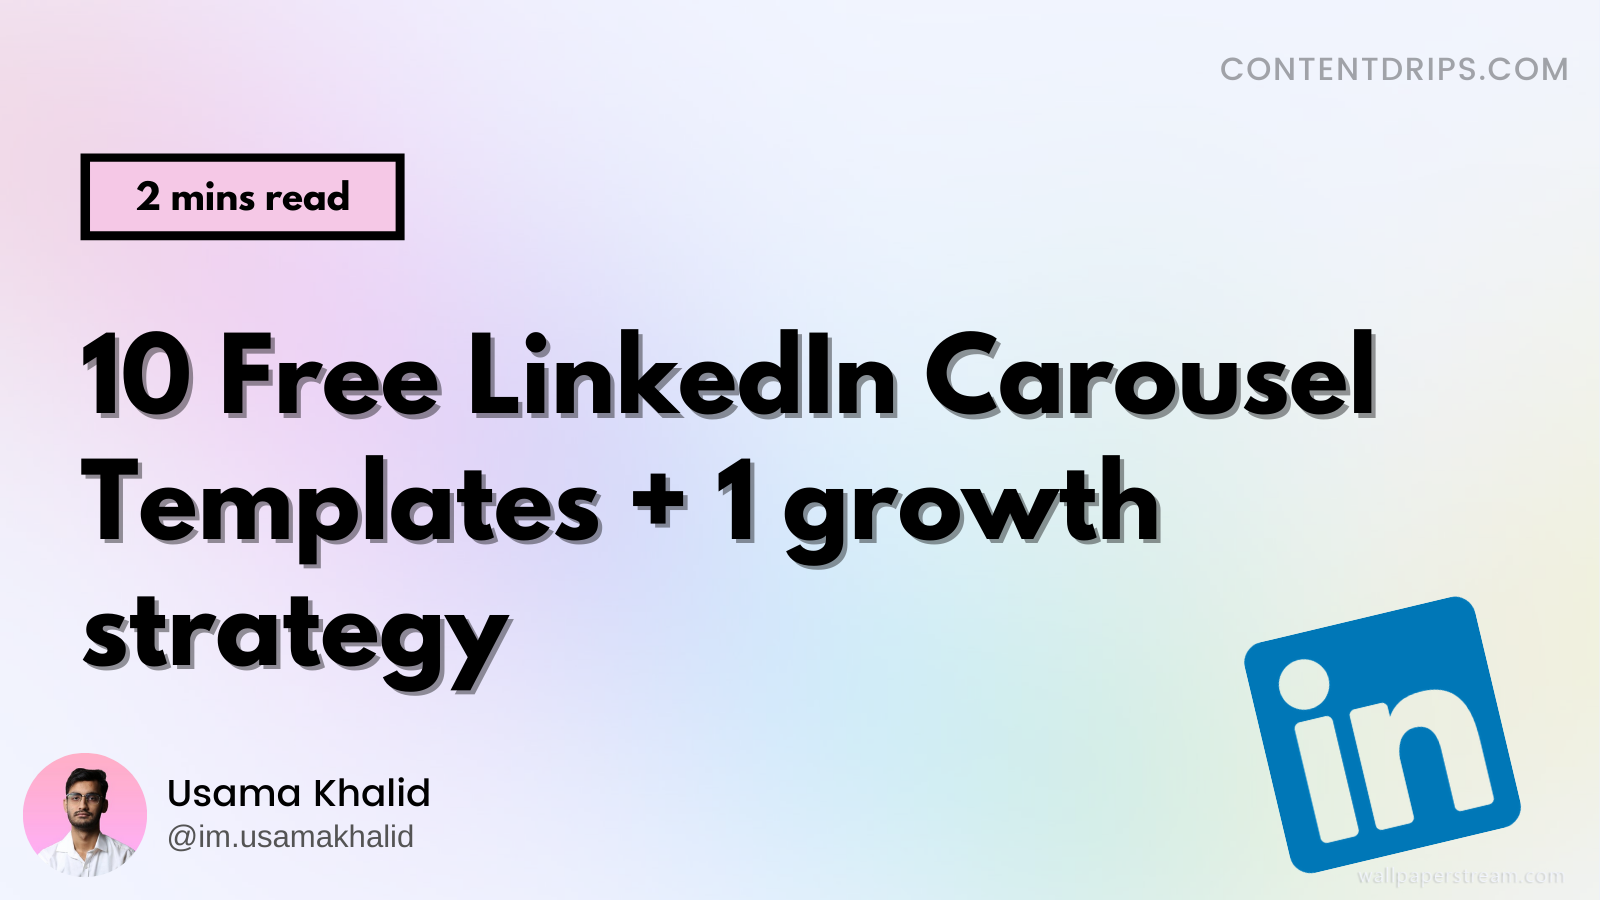 10 Free Carousel Templates for your LinkedIn content.